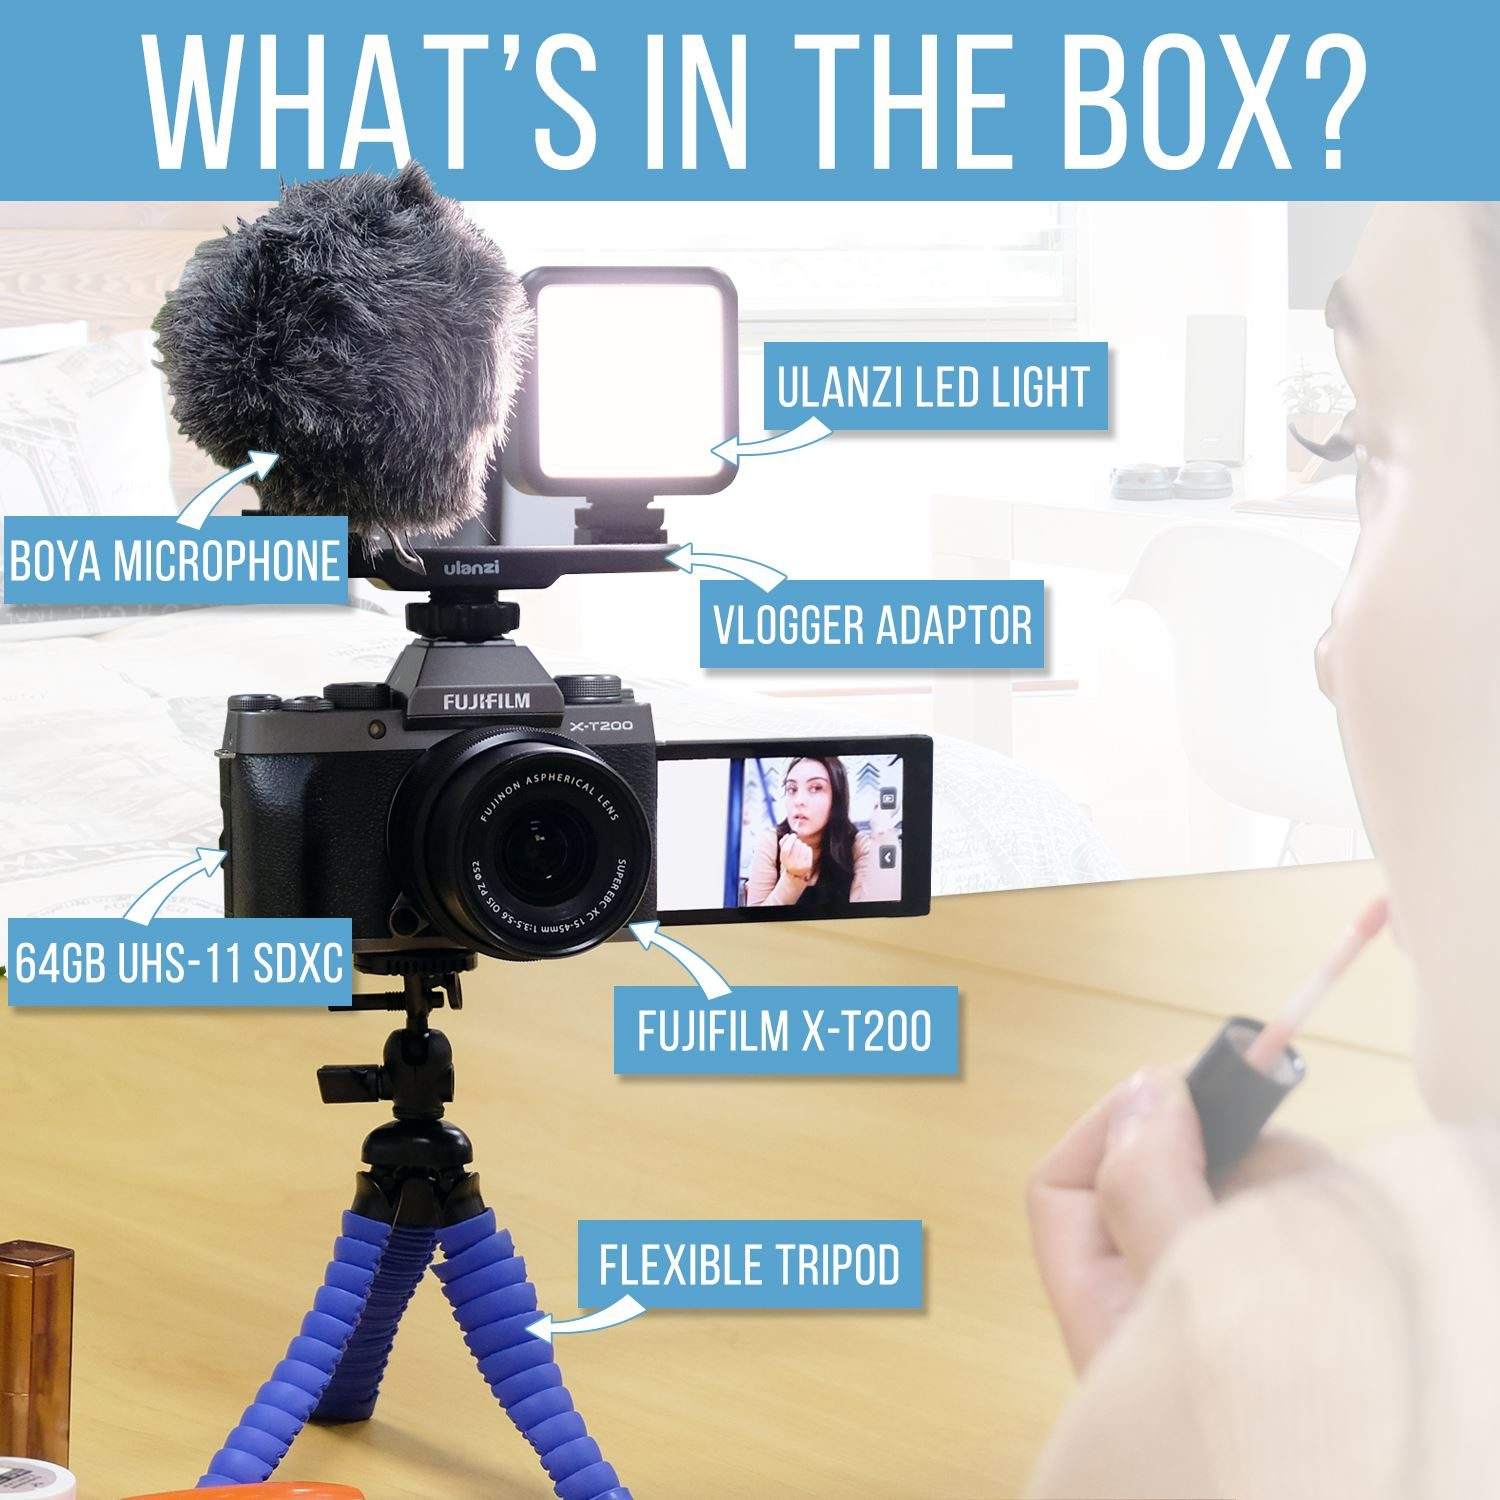 Whasts in the box